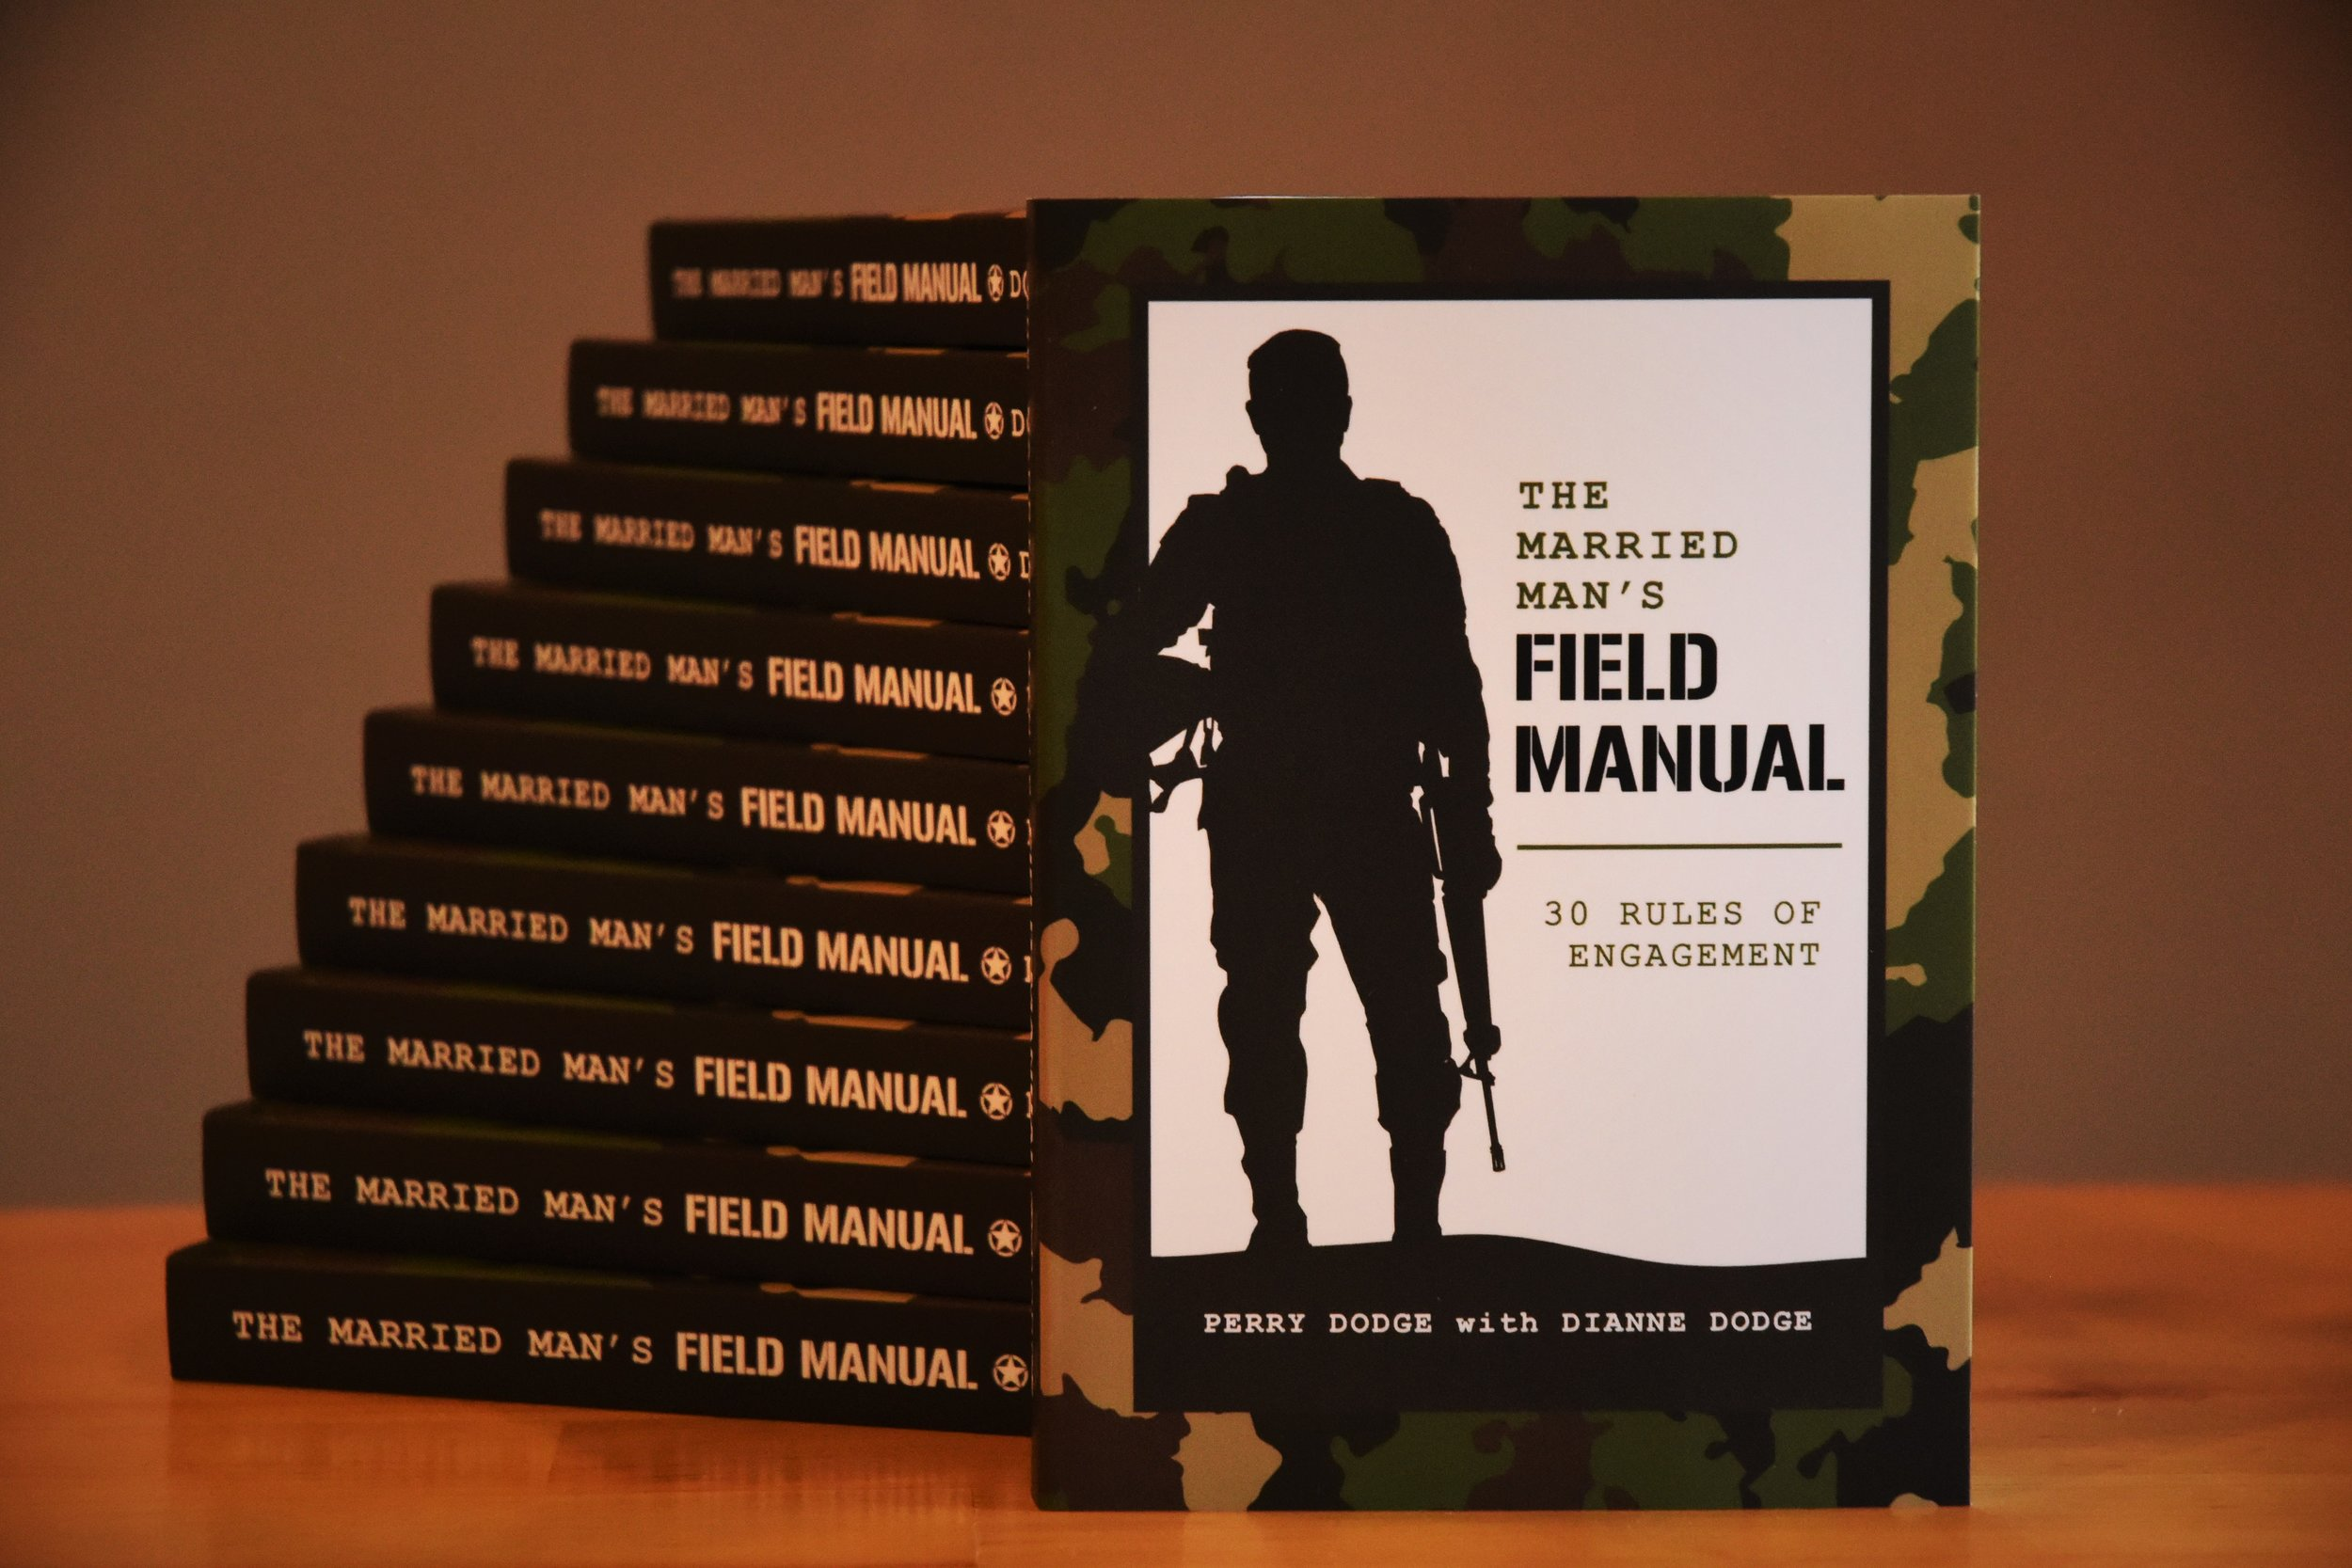 The Married Man's Field Manual